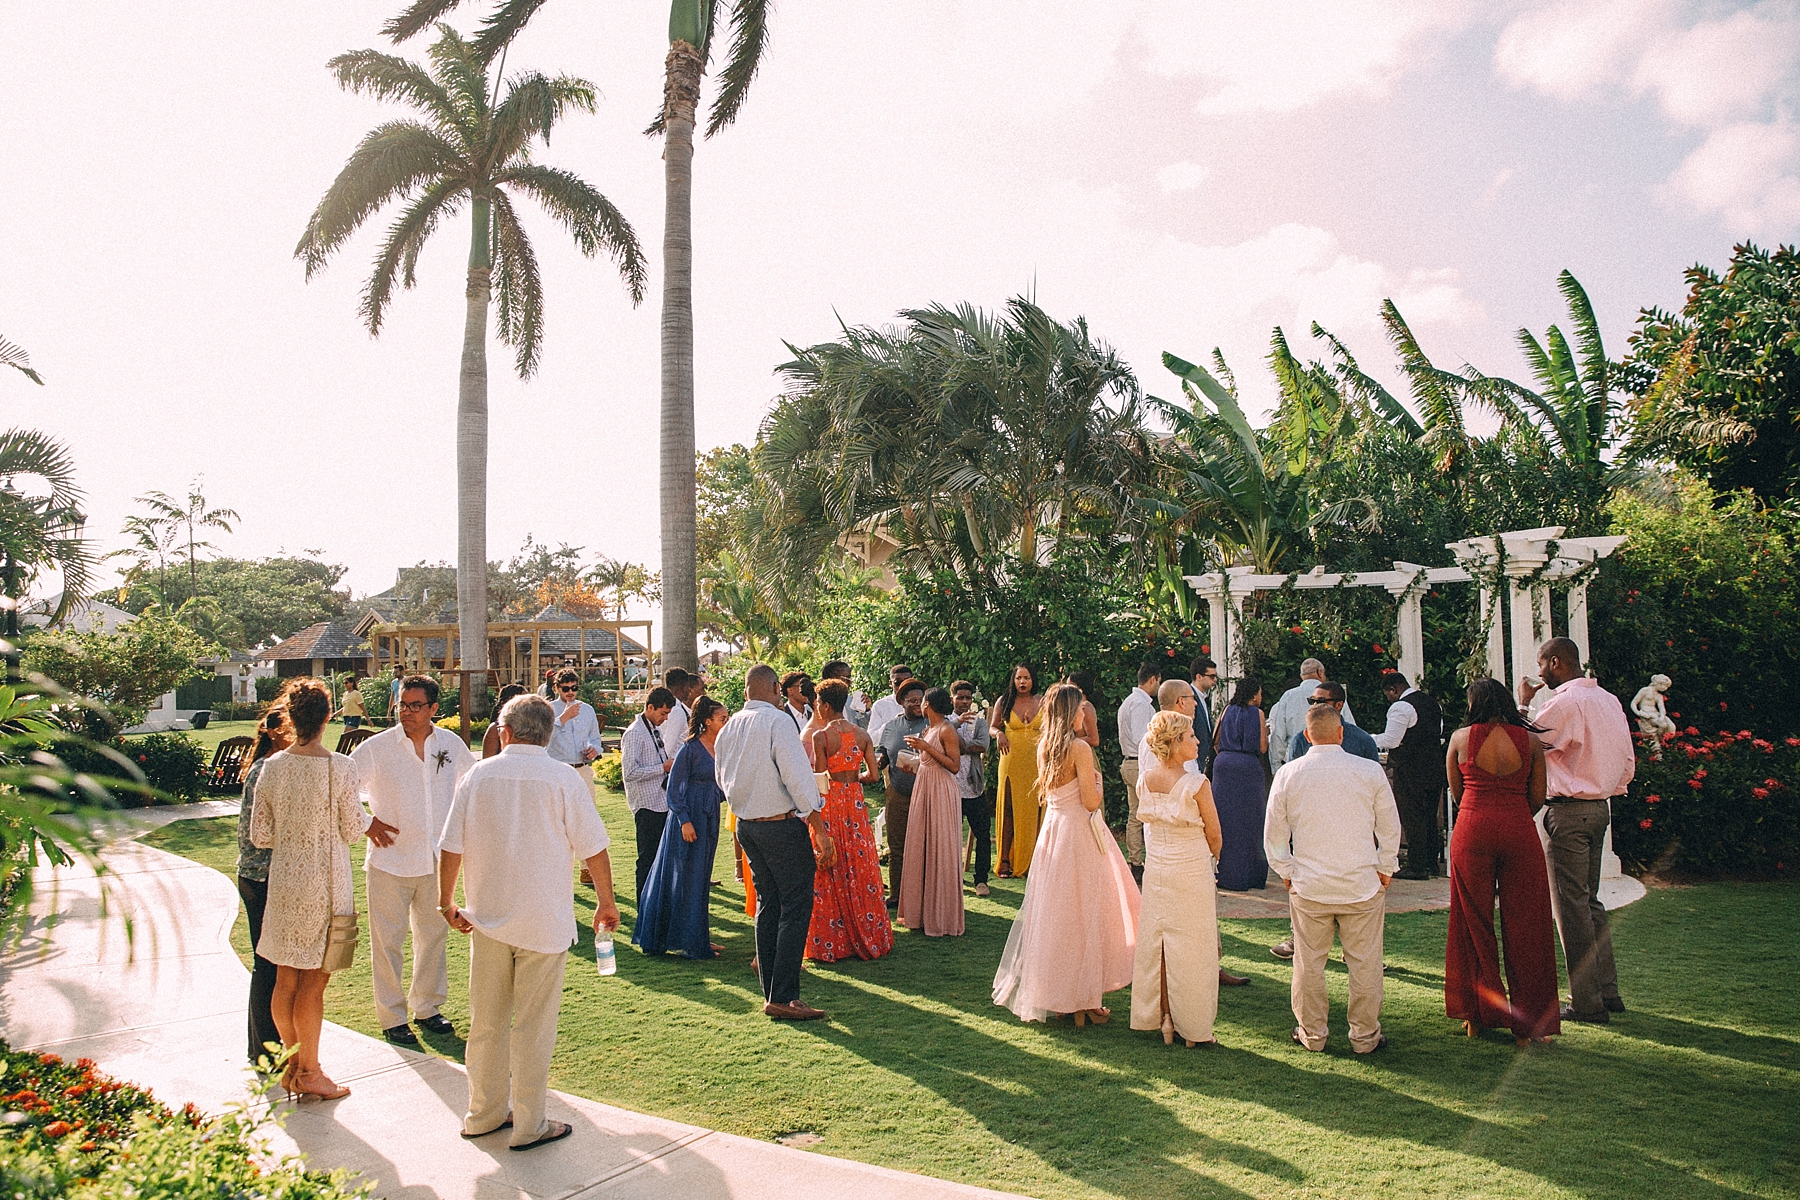 jamaica-royal-caribbean-sandals-wedding-destination_0042.jpg